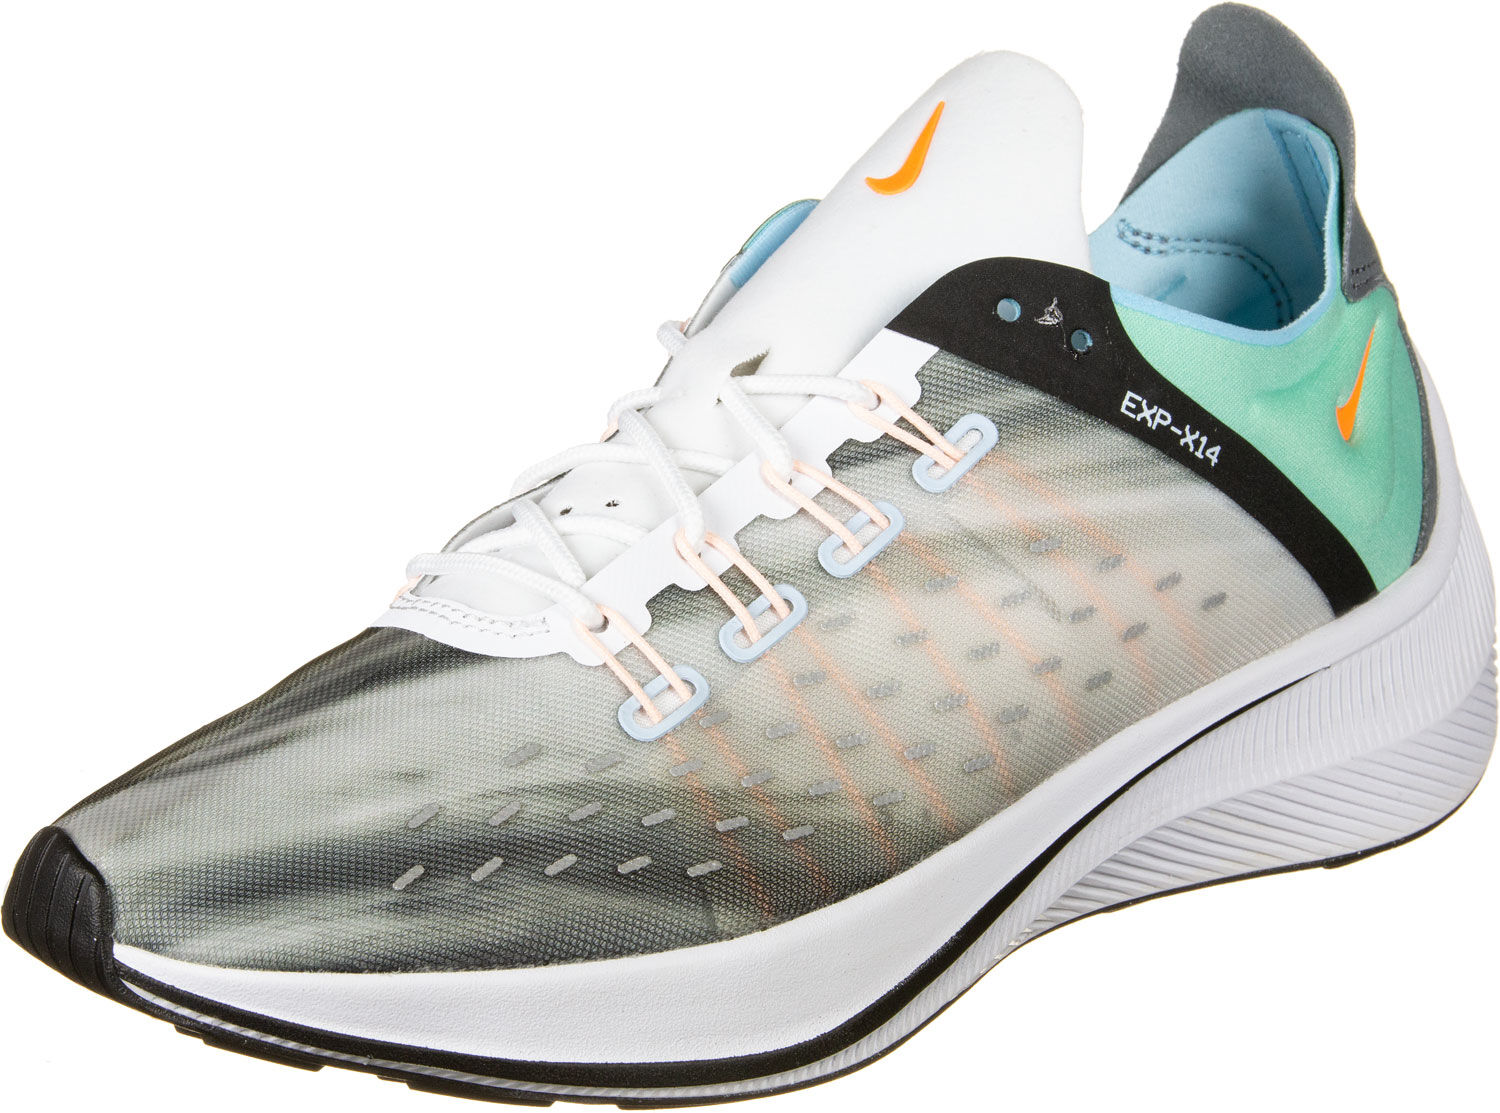 Nike EXP-X14 QS - Sneakers Low at Stylefile